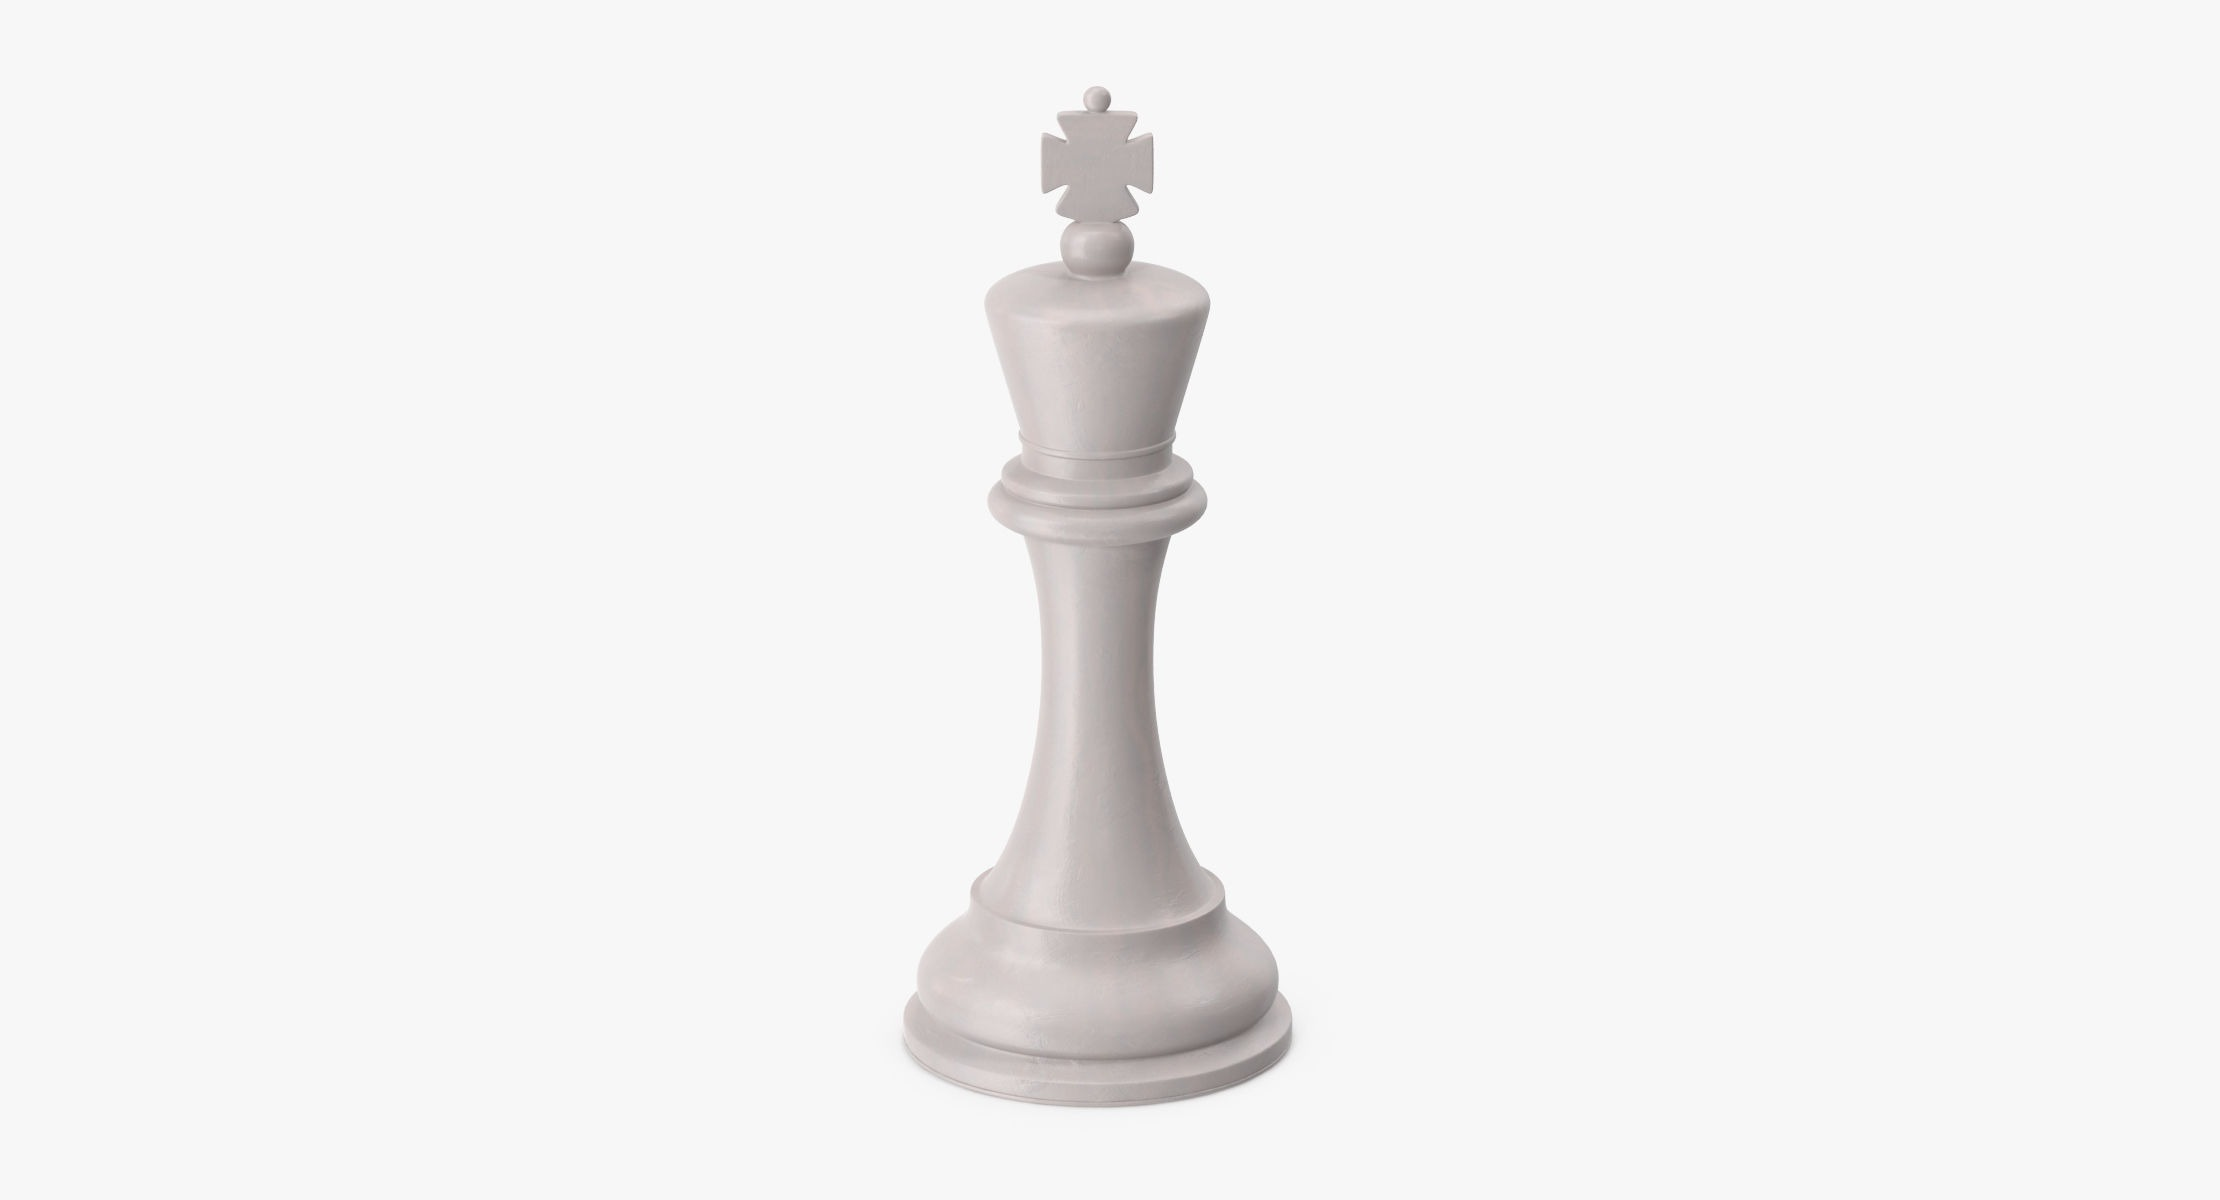 Chess Pieces - King White - reel 1